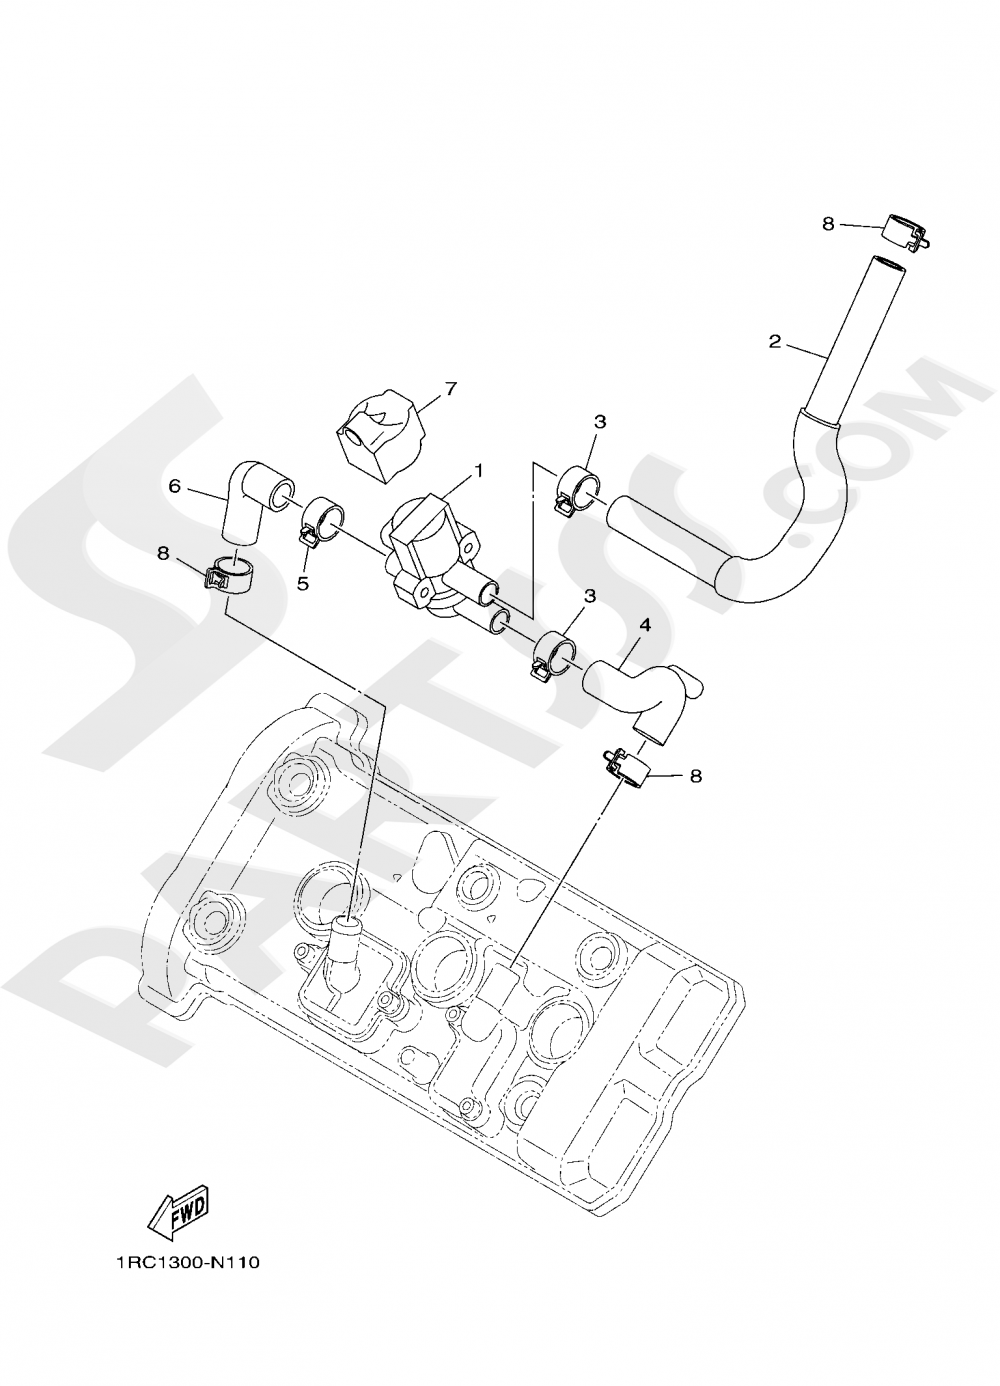 AIR INDUCTION SYSTEM Yamaha XSR900 2019